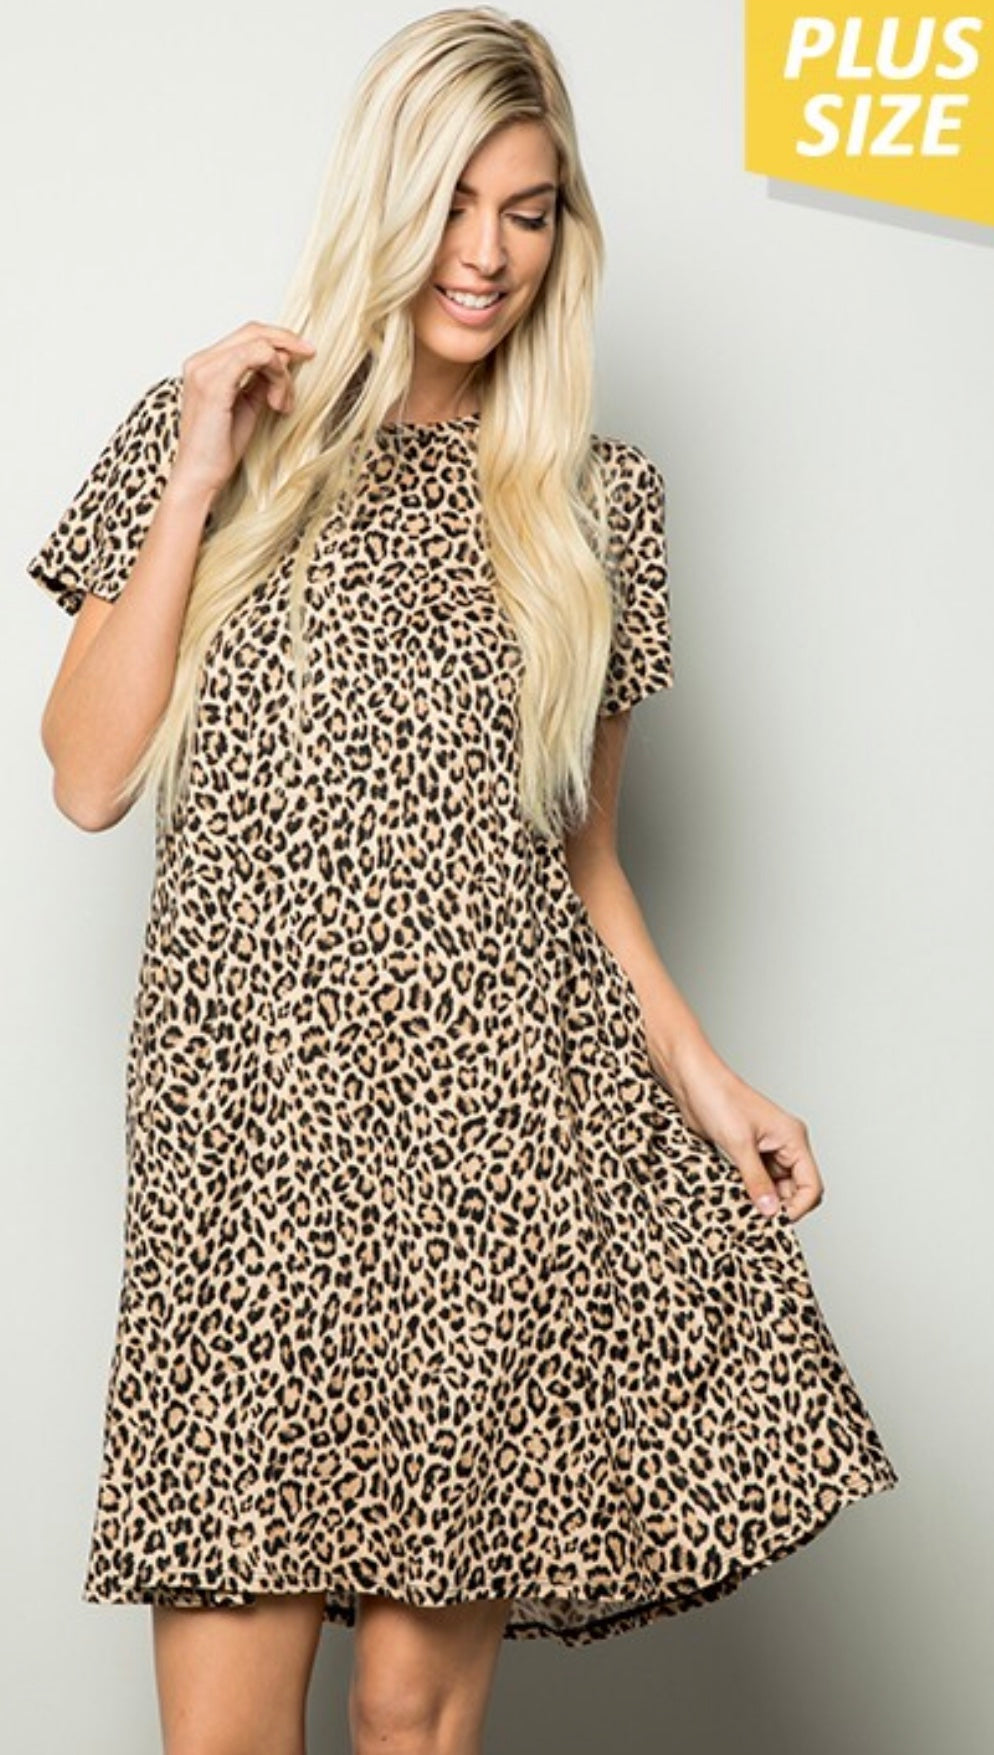 Plus size Leopard Print Dress with pockets with Free Shipping